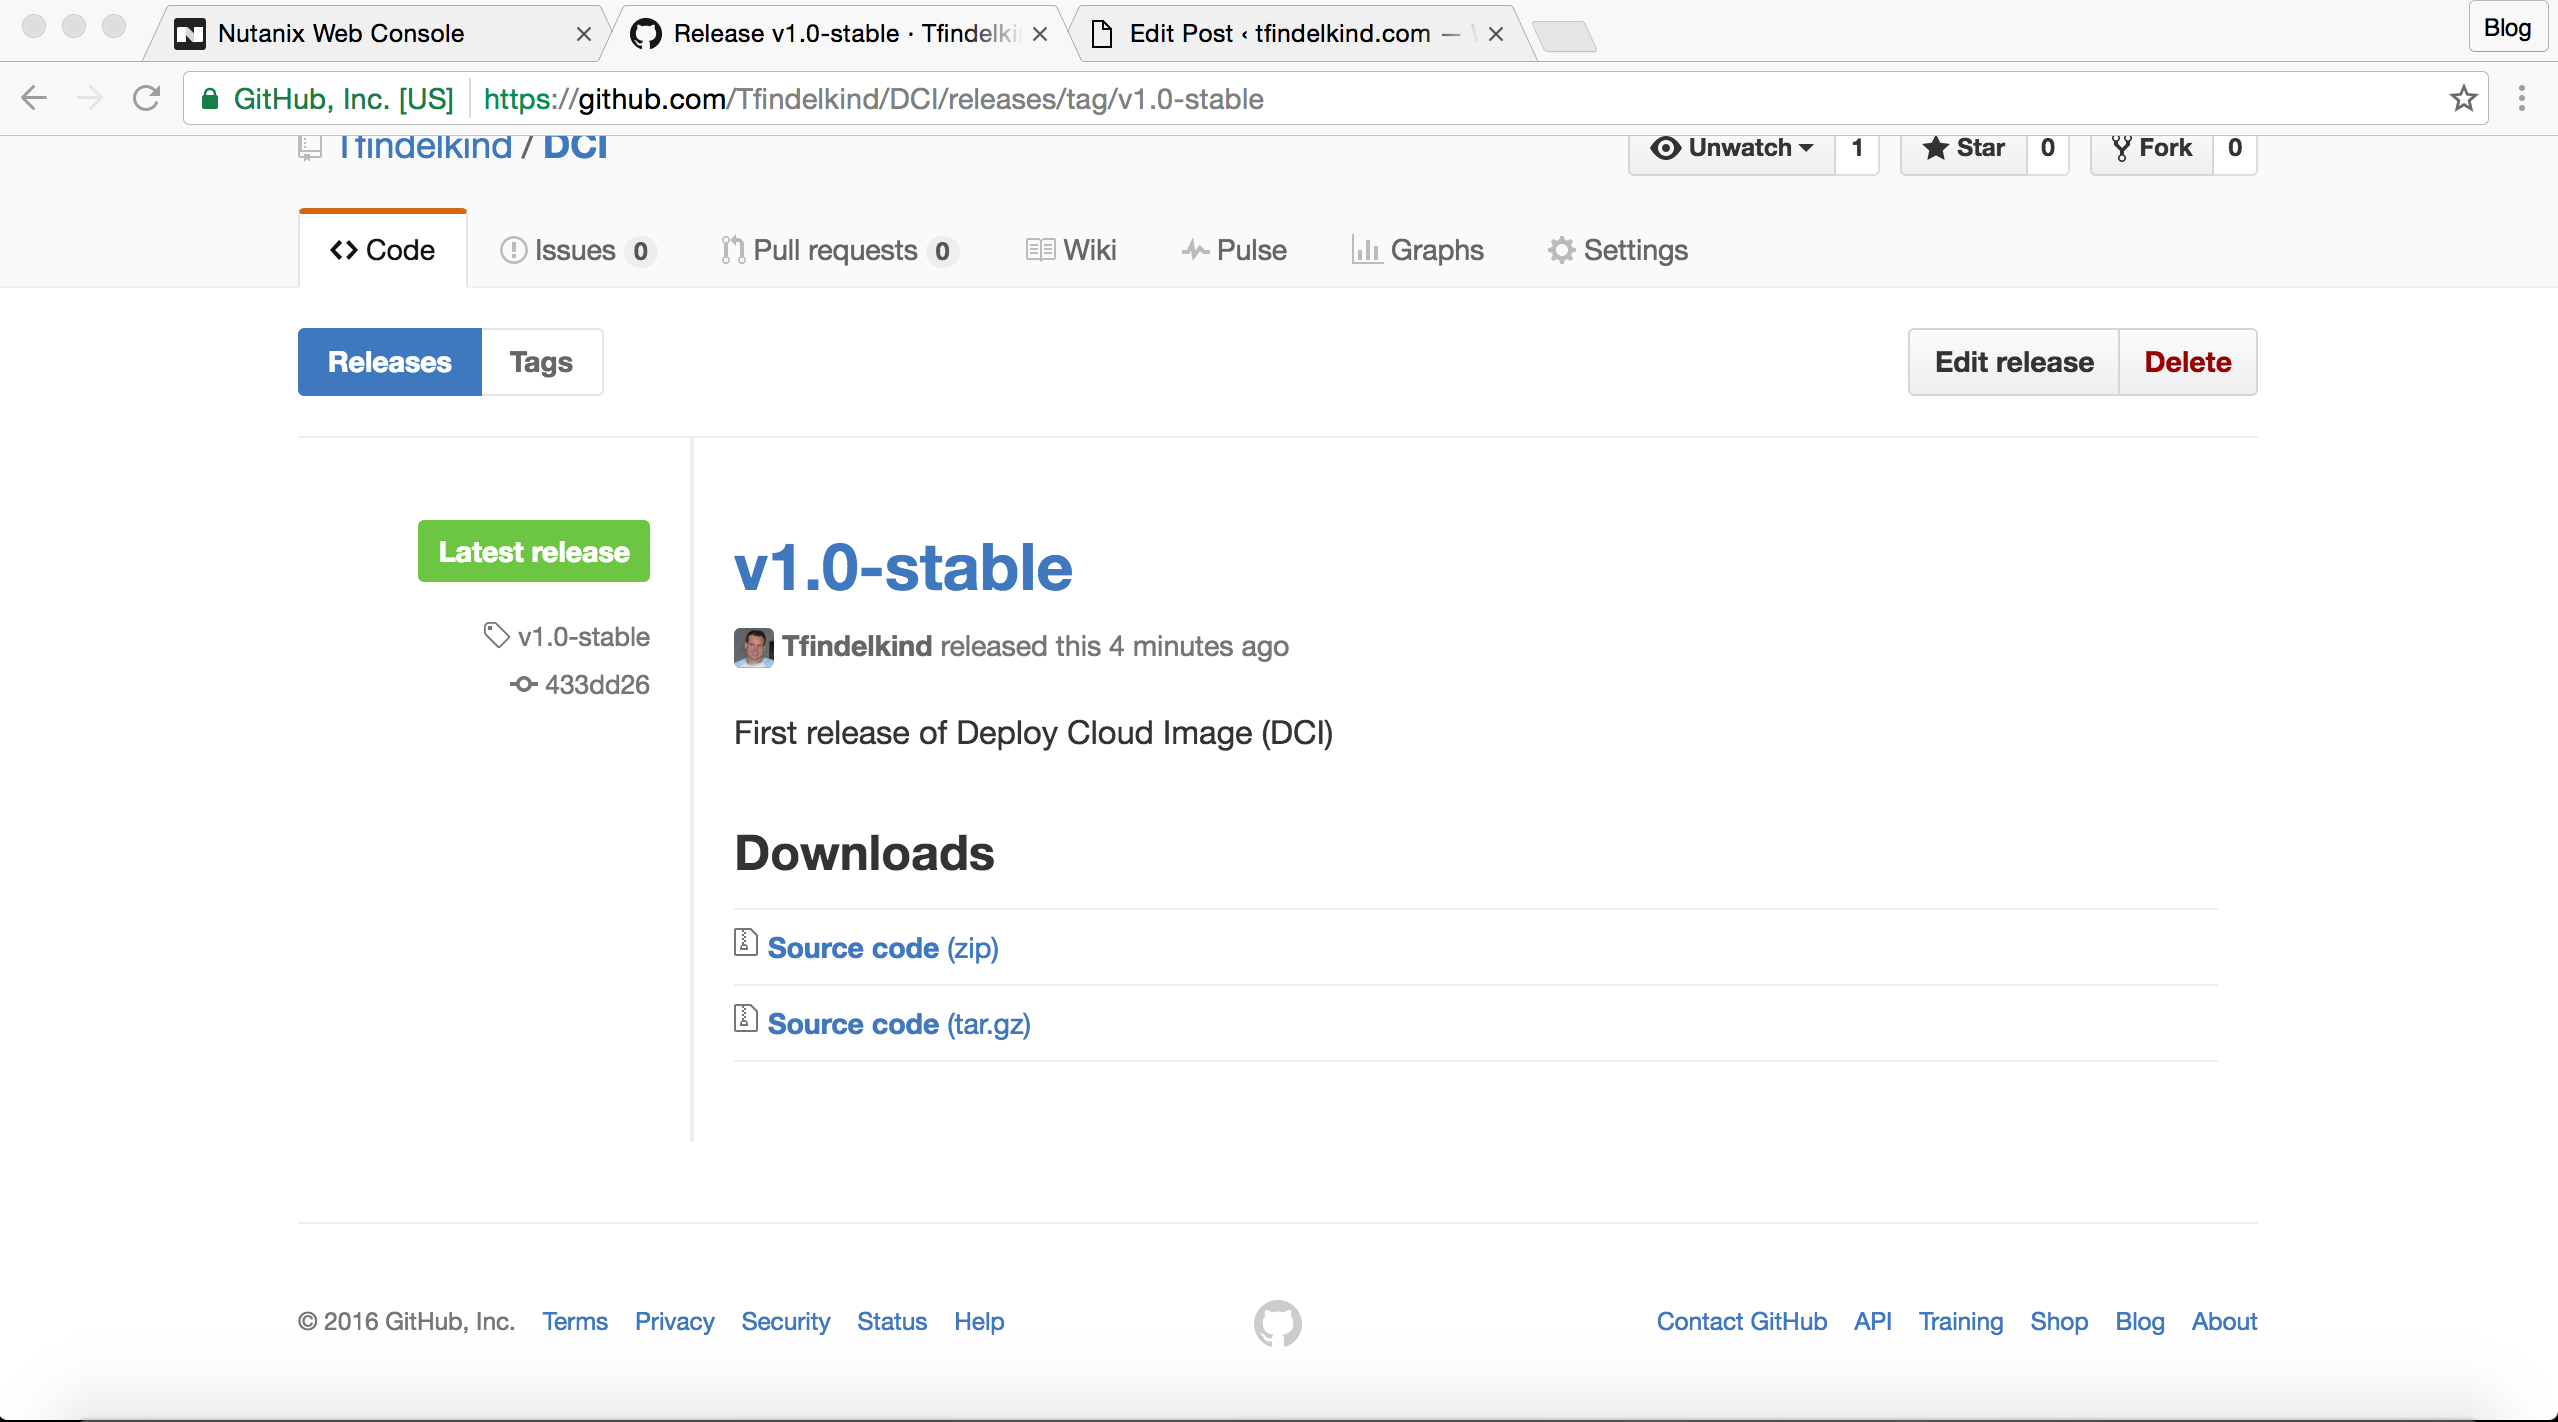 Release v1.0-stable · Tfindelkind-DCI Google Chrome, Heute at 11.40.54